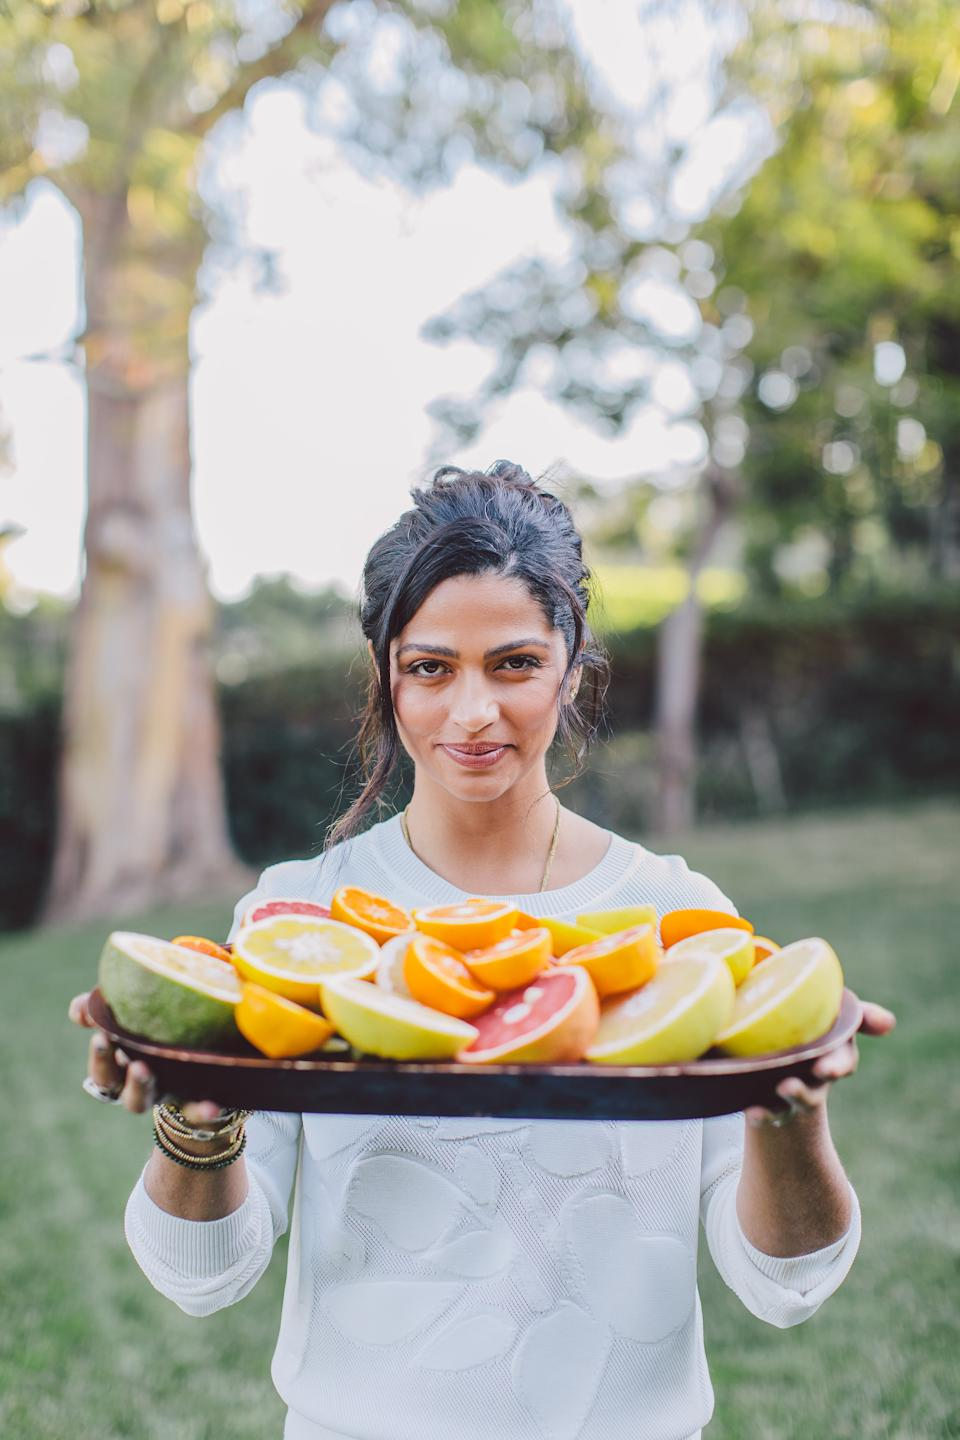 Camila Alves McConaughey warns about sneaky sugars hidden in some of our favorite foods: tomato sauces, salad dressing and ketchup. (Photo: Ashley Burns)